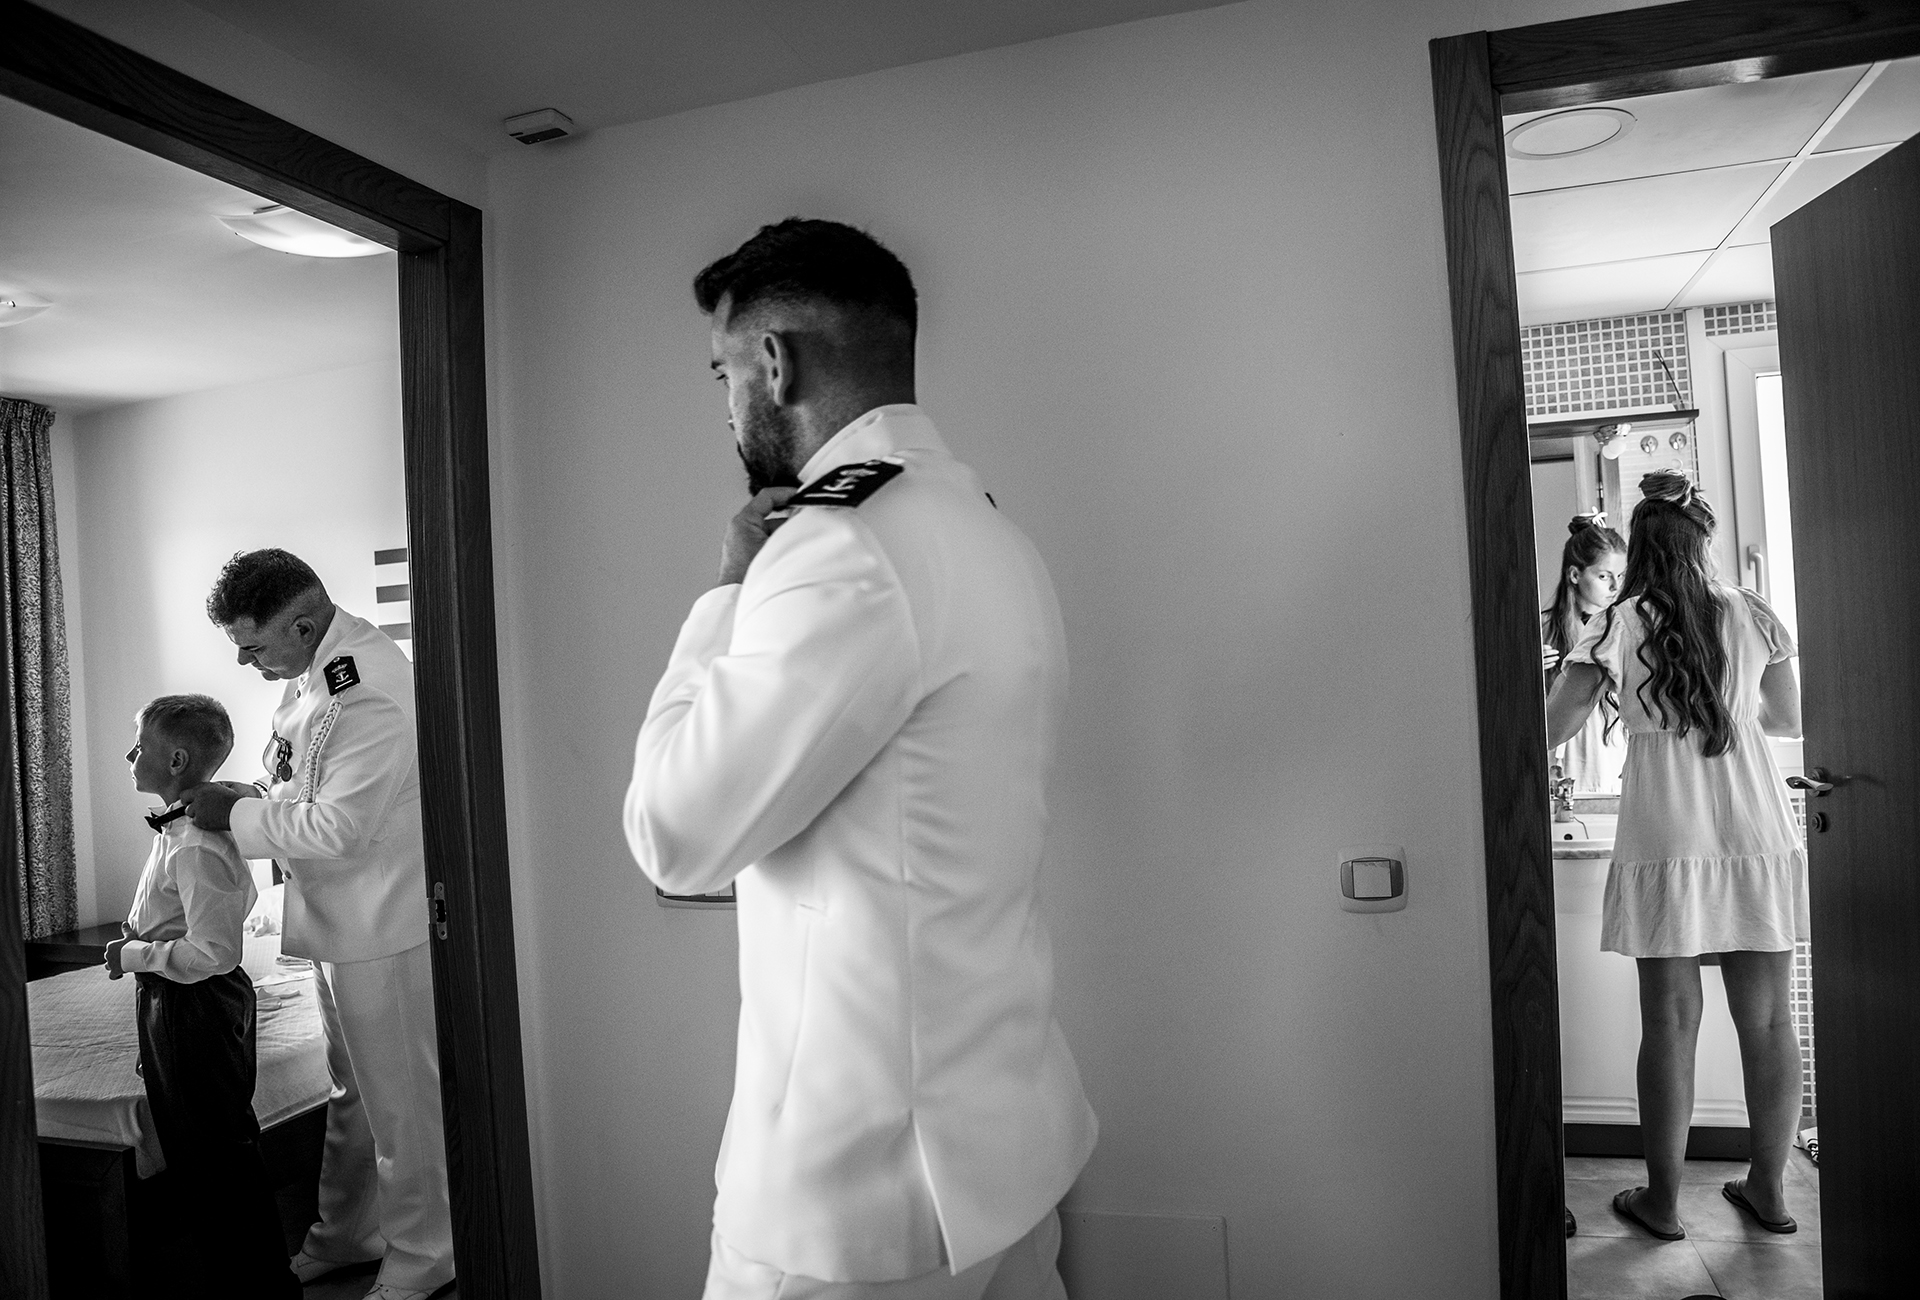 Aguilas wedding preparations photos | The groom spent the moments leading up to the wedding getting ready